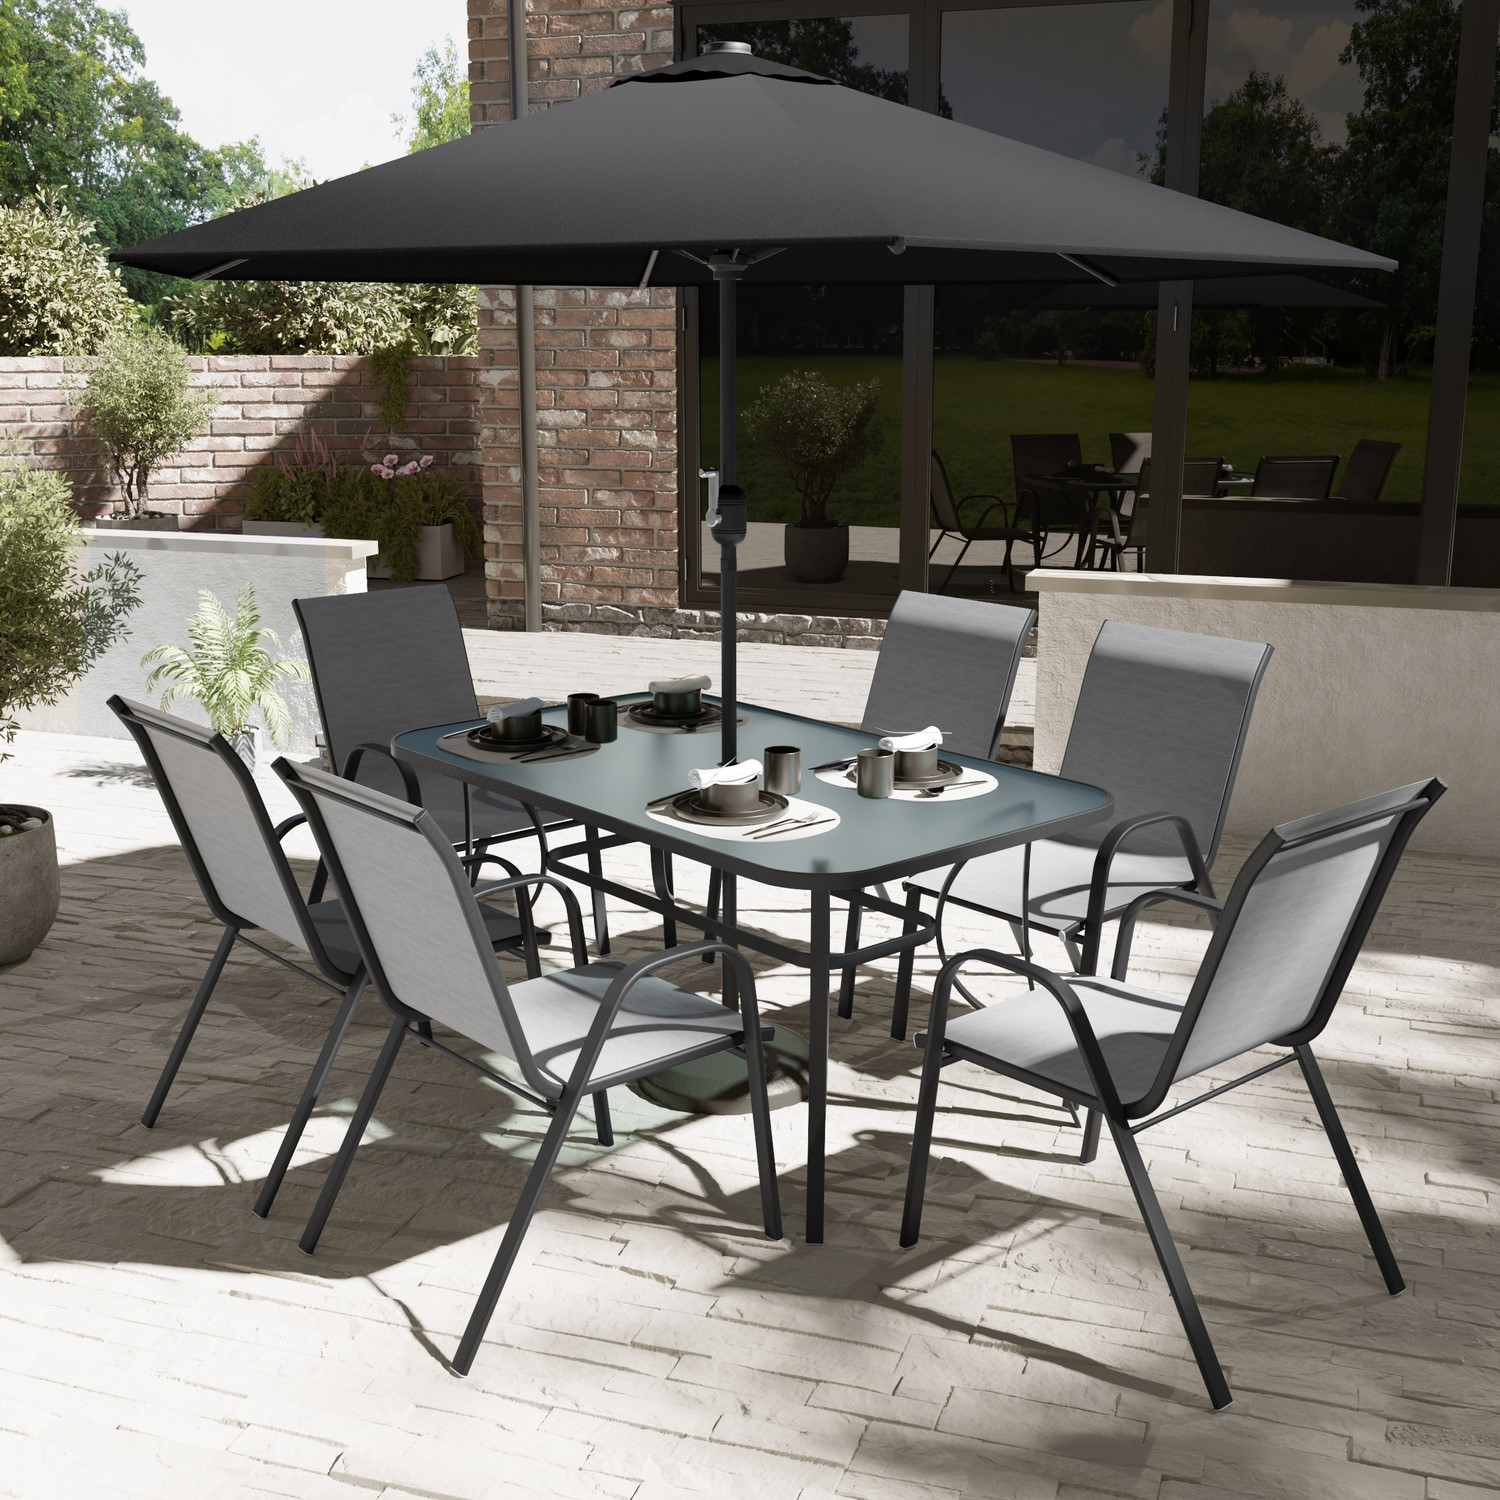 Black & Grey Metal 9 Seater Garden Dining Set - Parasol Included